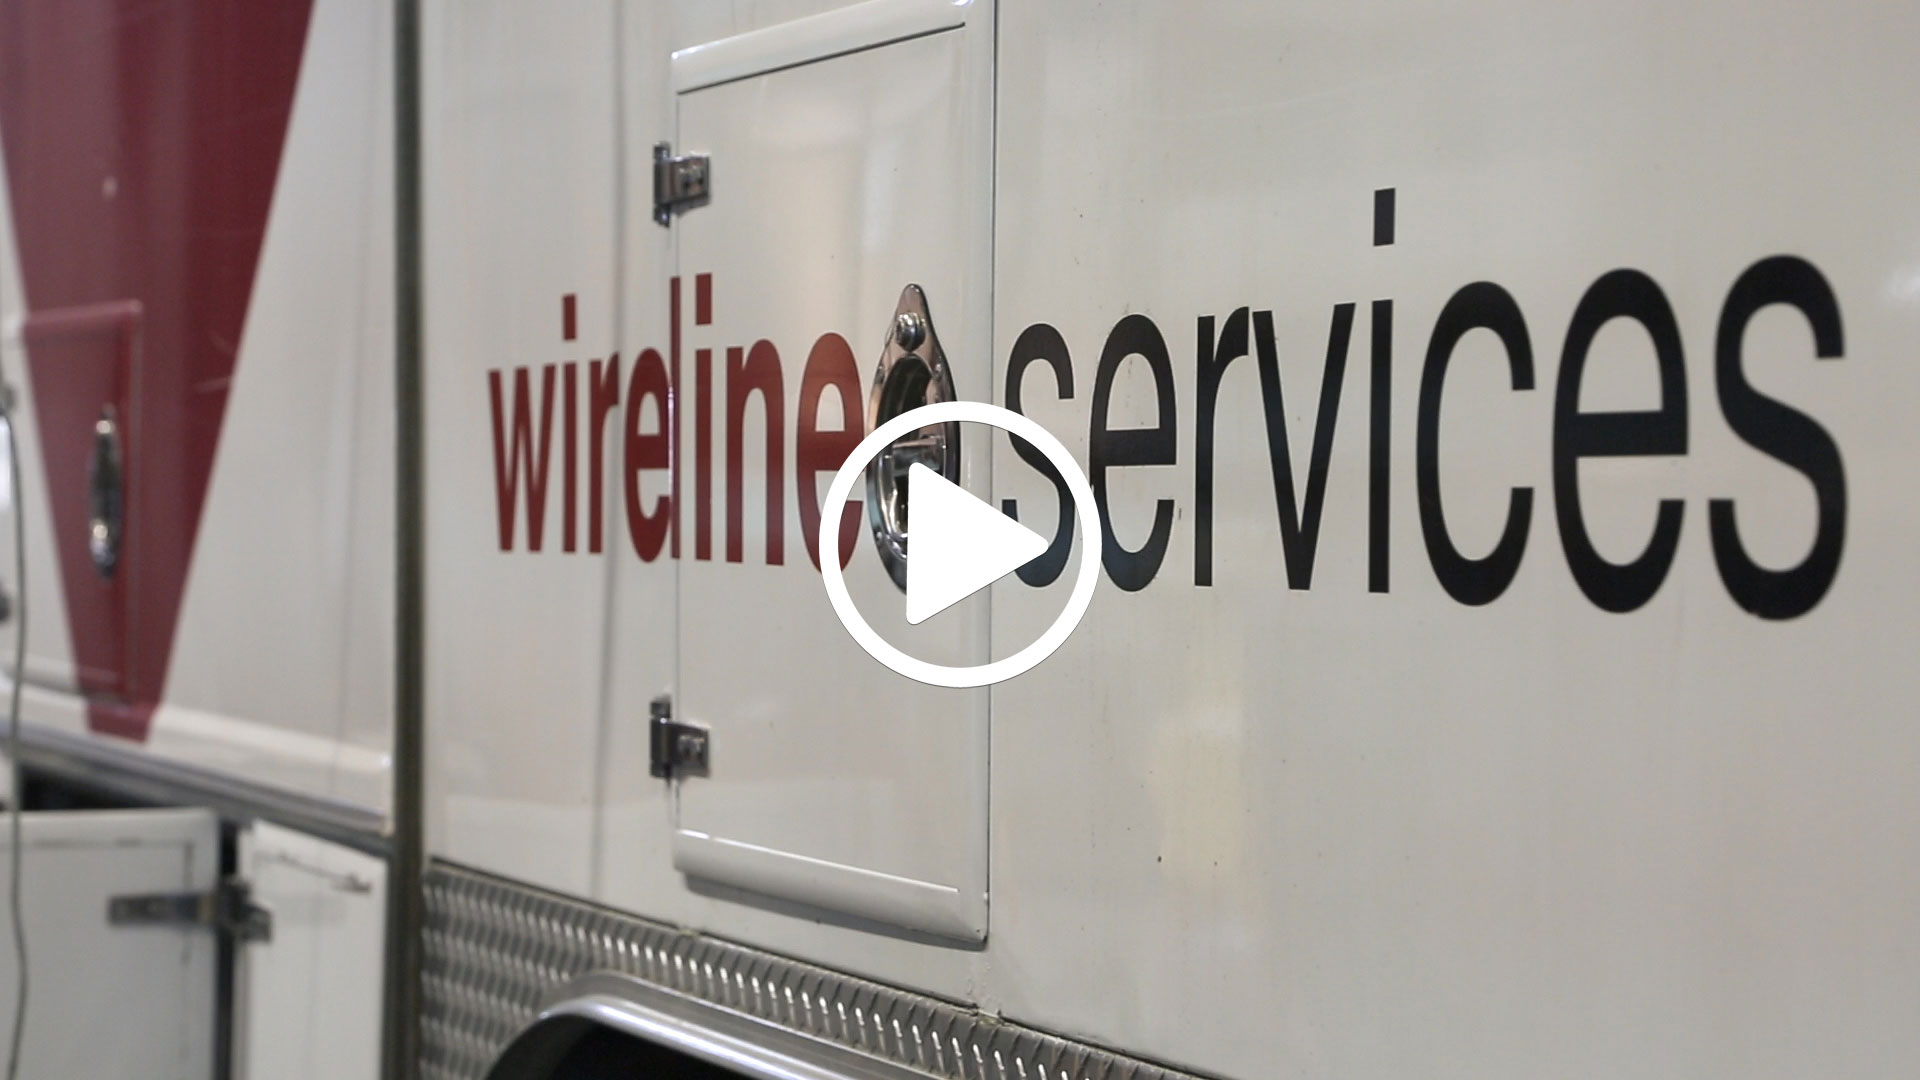 Watch our careers video for available job opening Wireline Field Operator in Casper, WY